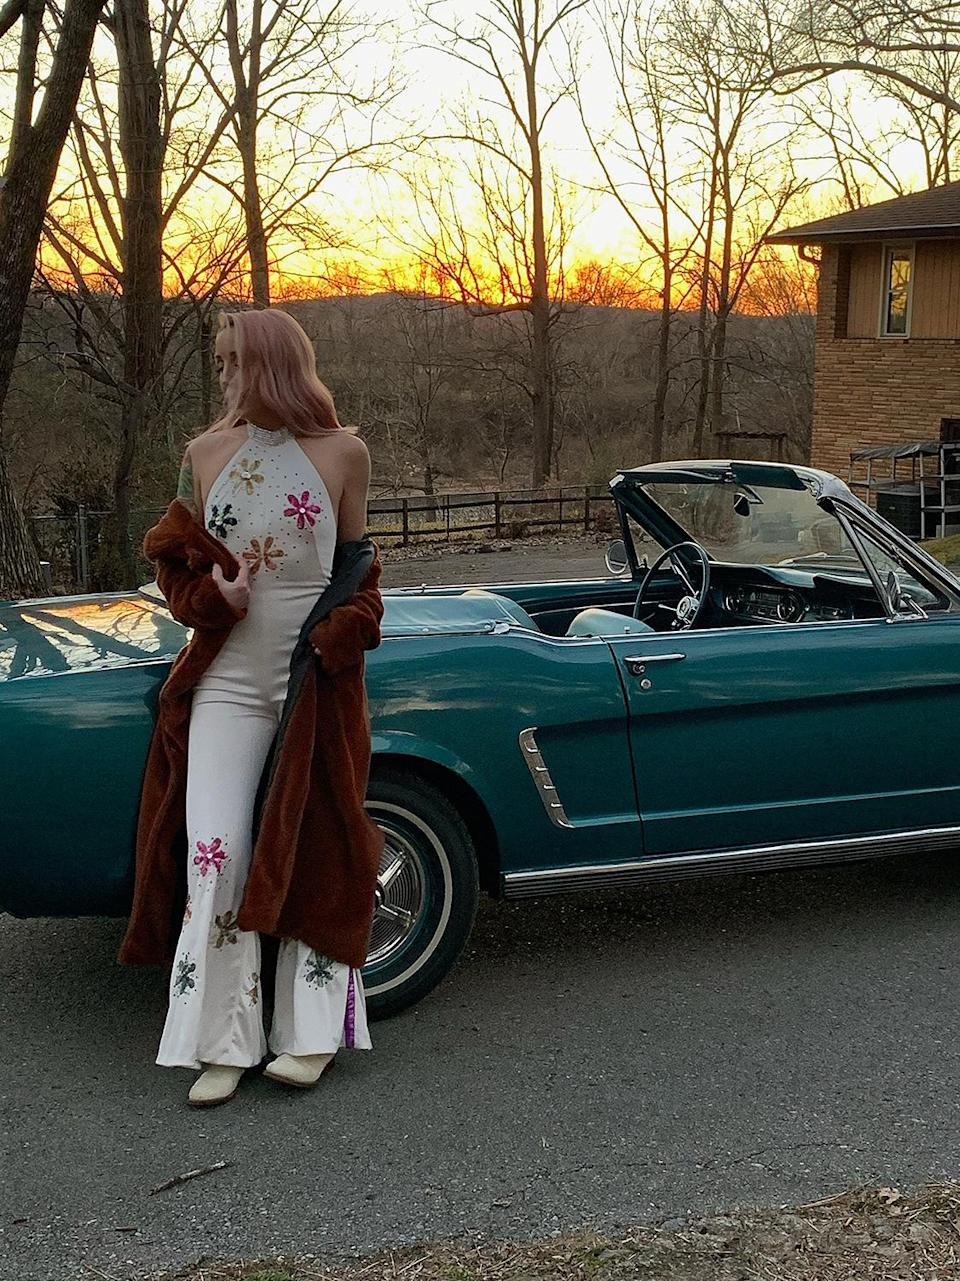 """<p>Ahhh, sunset in Nashville. This is one of my favorite vintage jumpsuits I've ever gotten from <a href=""""https://www.starstruckvintage.com/"""" rel=""""nofollow noopener"""" target=""""_blank"""" data-ylk=""""slk:Star Struck Vintage"""" class=""""link rapid-noclick-resp"""">Star Struck Vintage</a>, here in Nashville. The black flower jumpsuit I wore in another scene is from there too! Check them out!</p>"""